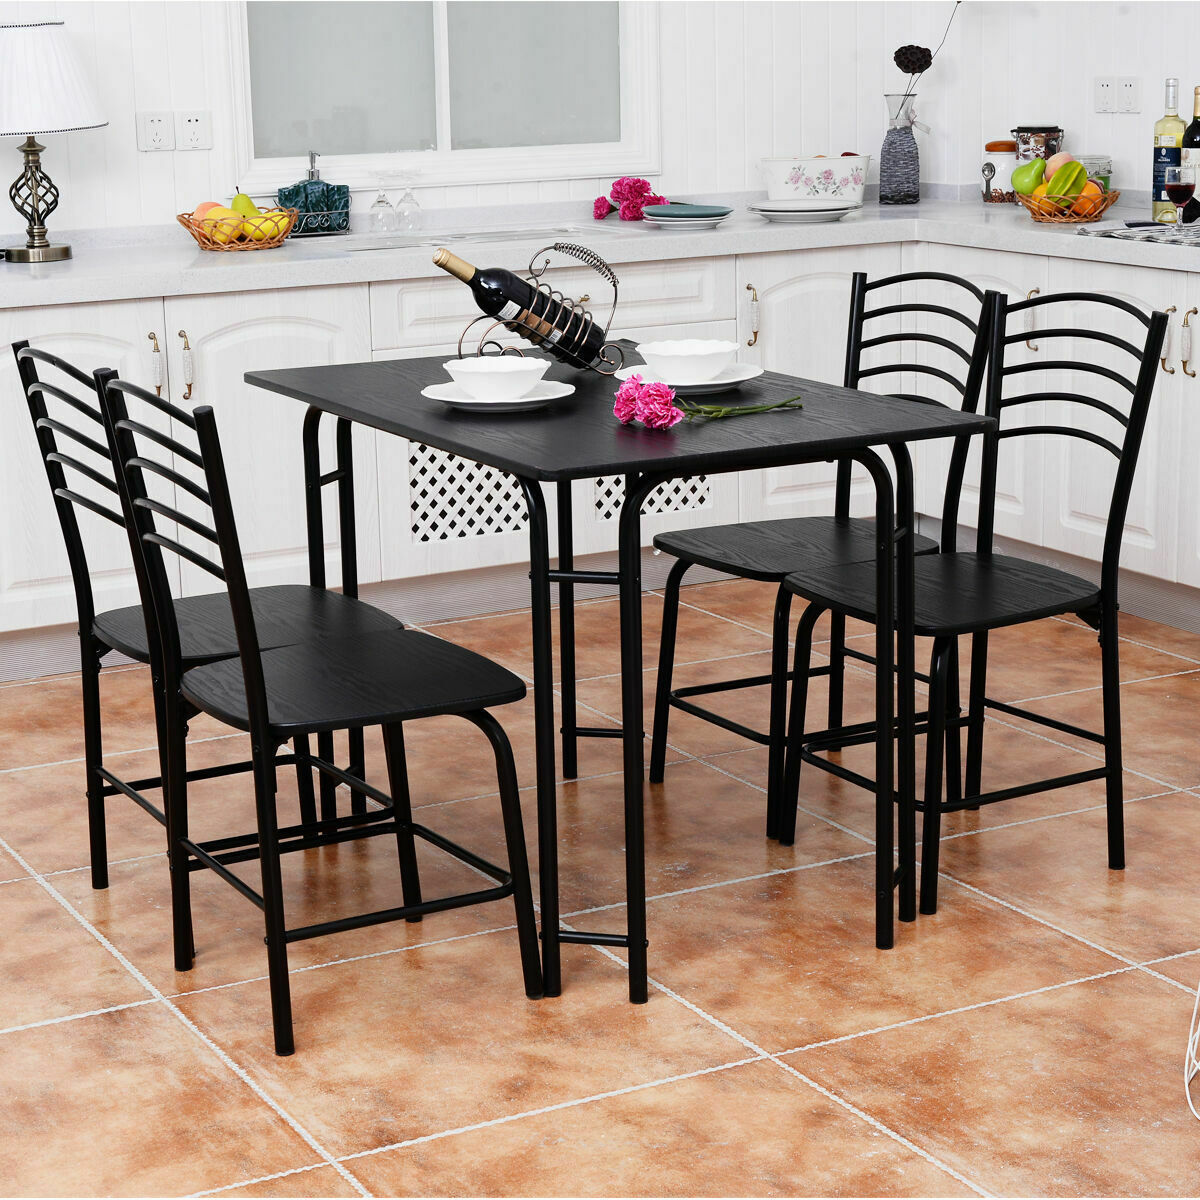 Walmart Kitchen Furniture: 5 Pcs Modern Dining Table Set 4 Chairs Steel Frame Home